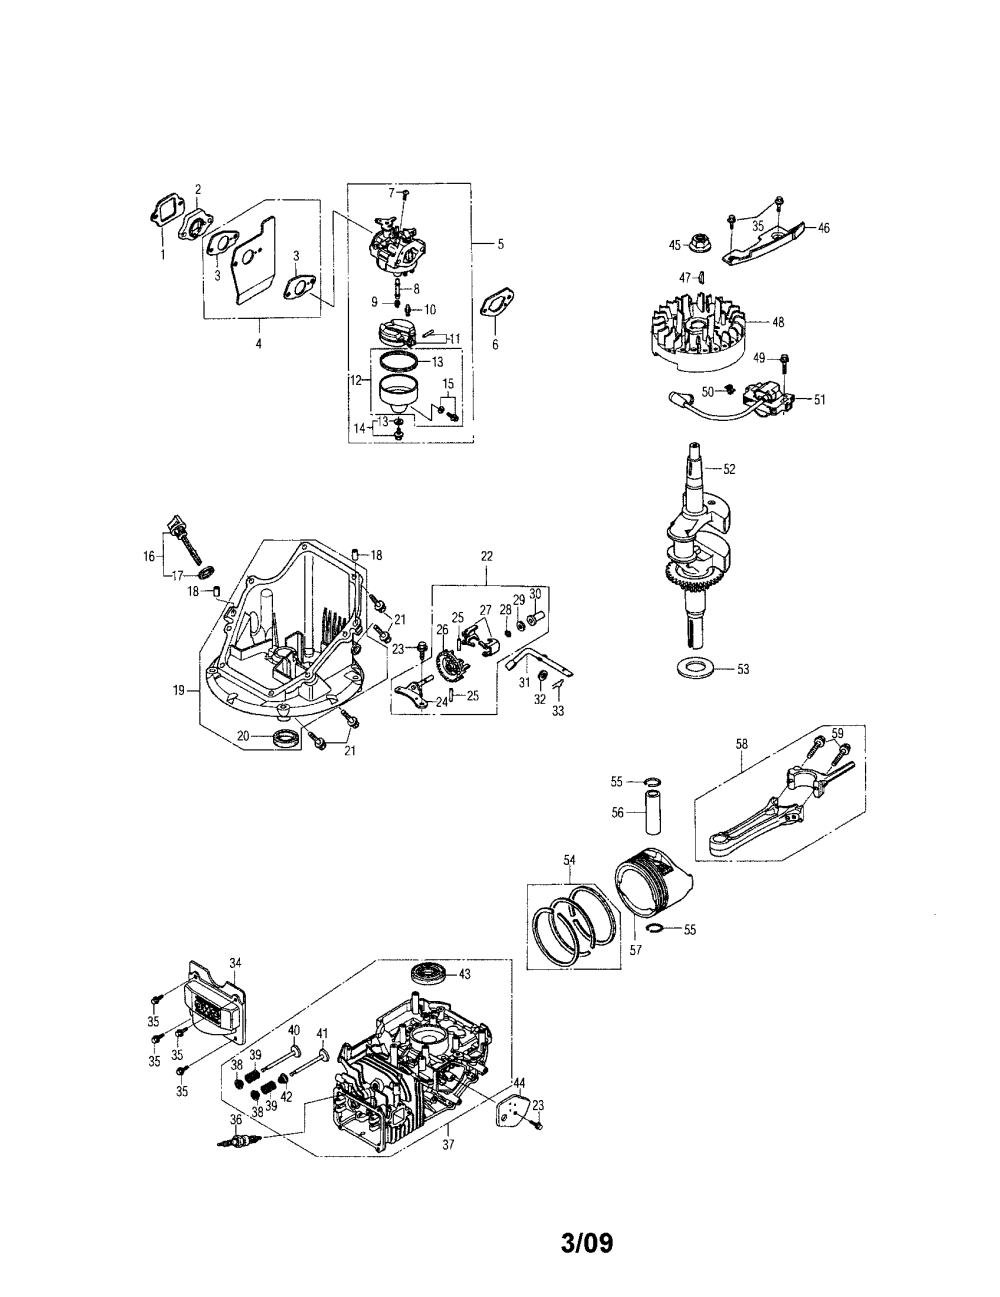 medium resolution of honda engine gcv160 parts diagram wiring diagram perfomancehonda engine gcv160 carburetor diagram wiring diagram basic honda